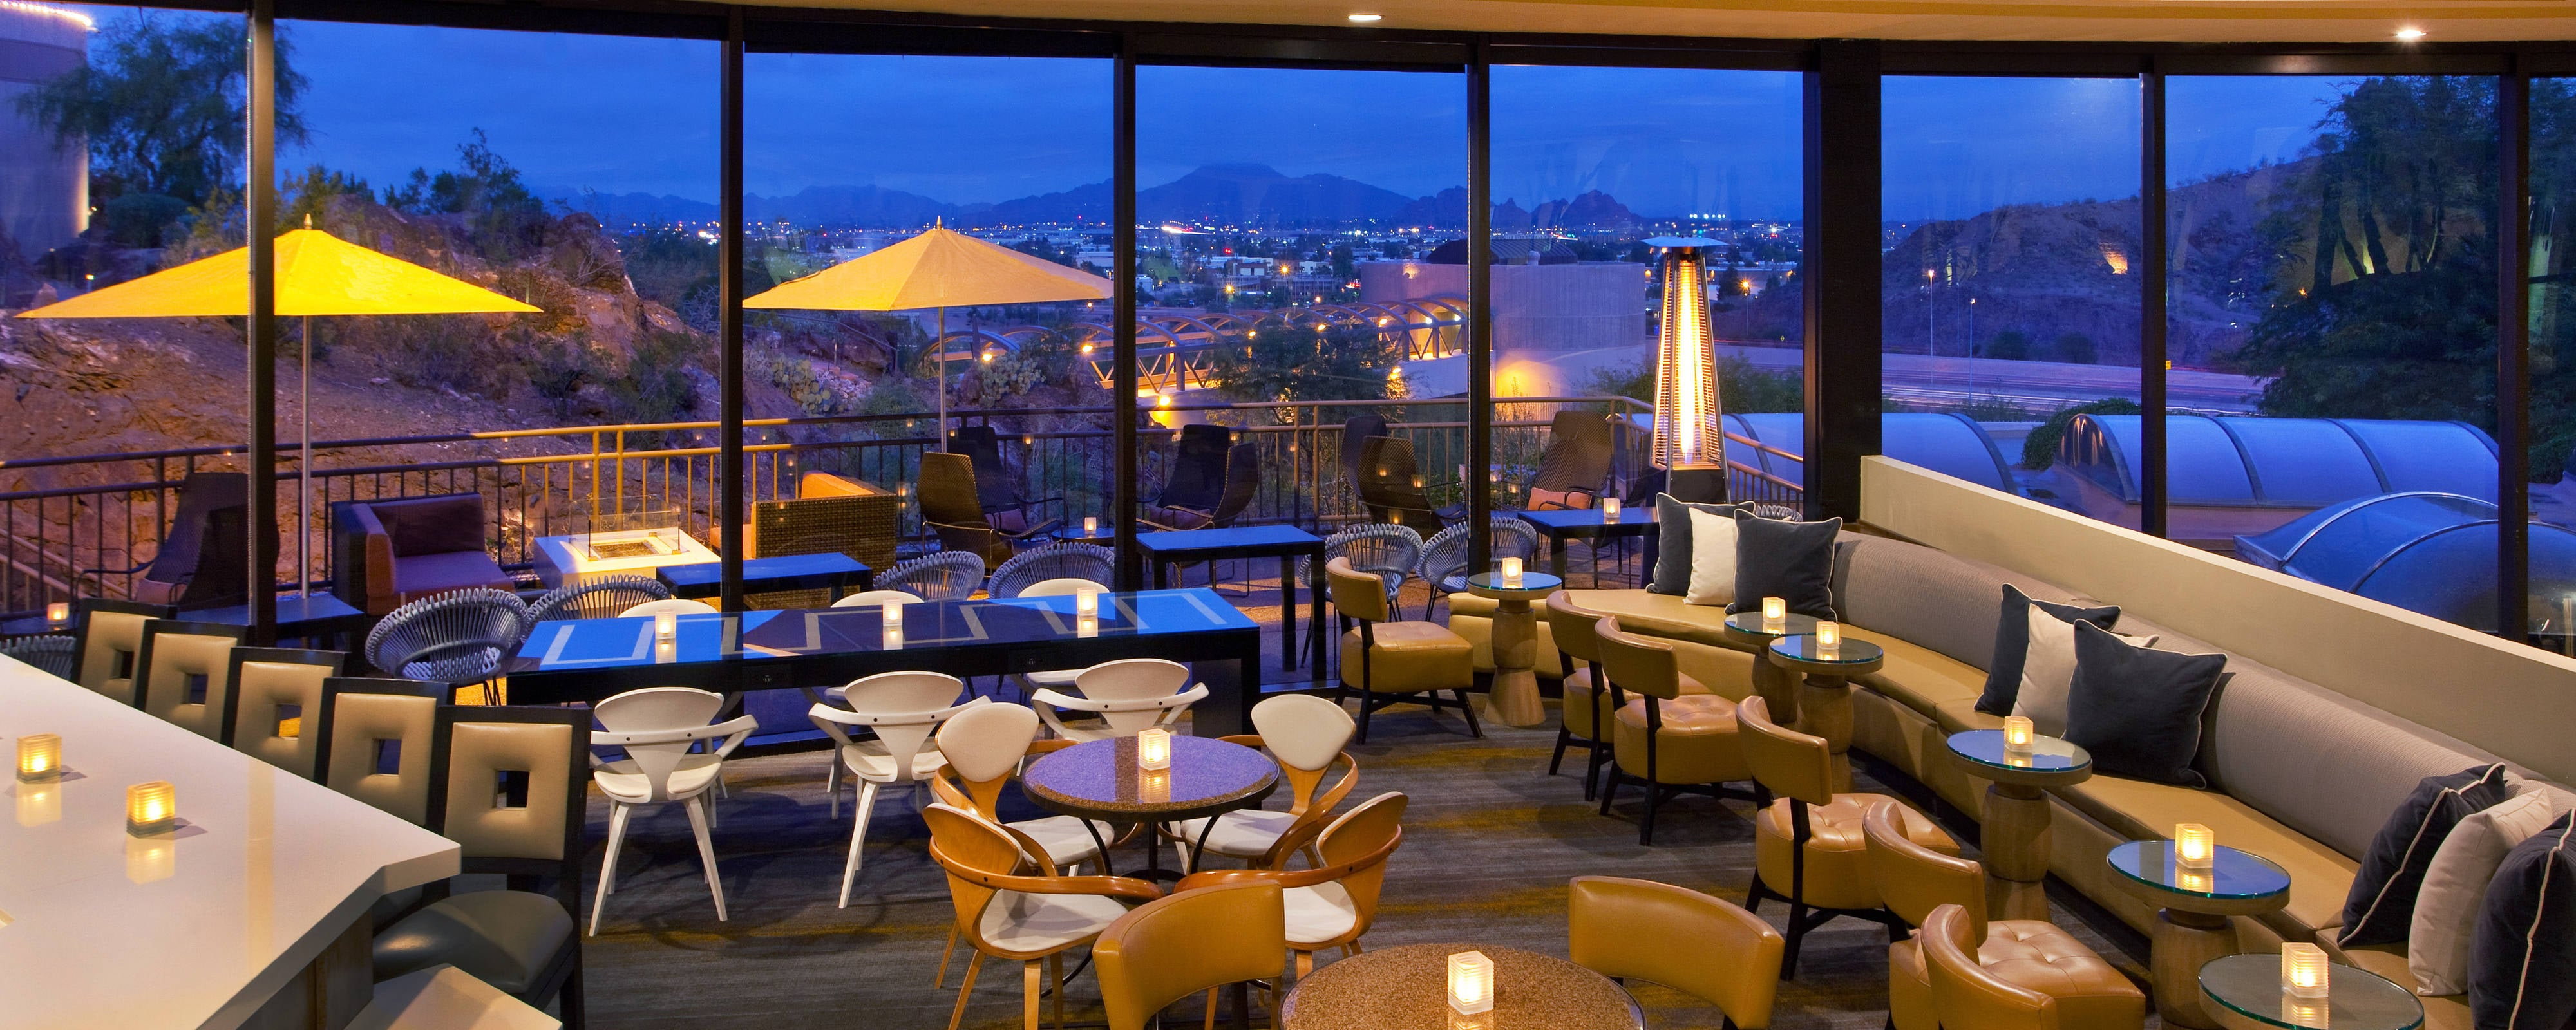 Best Restaurants In Phoenix 2021 Restaurants Tempe AZ | Marriott Phoenix Resort Tempe at The Buttes